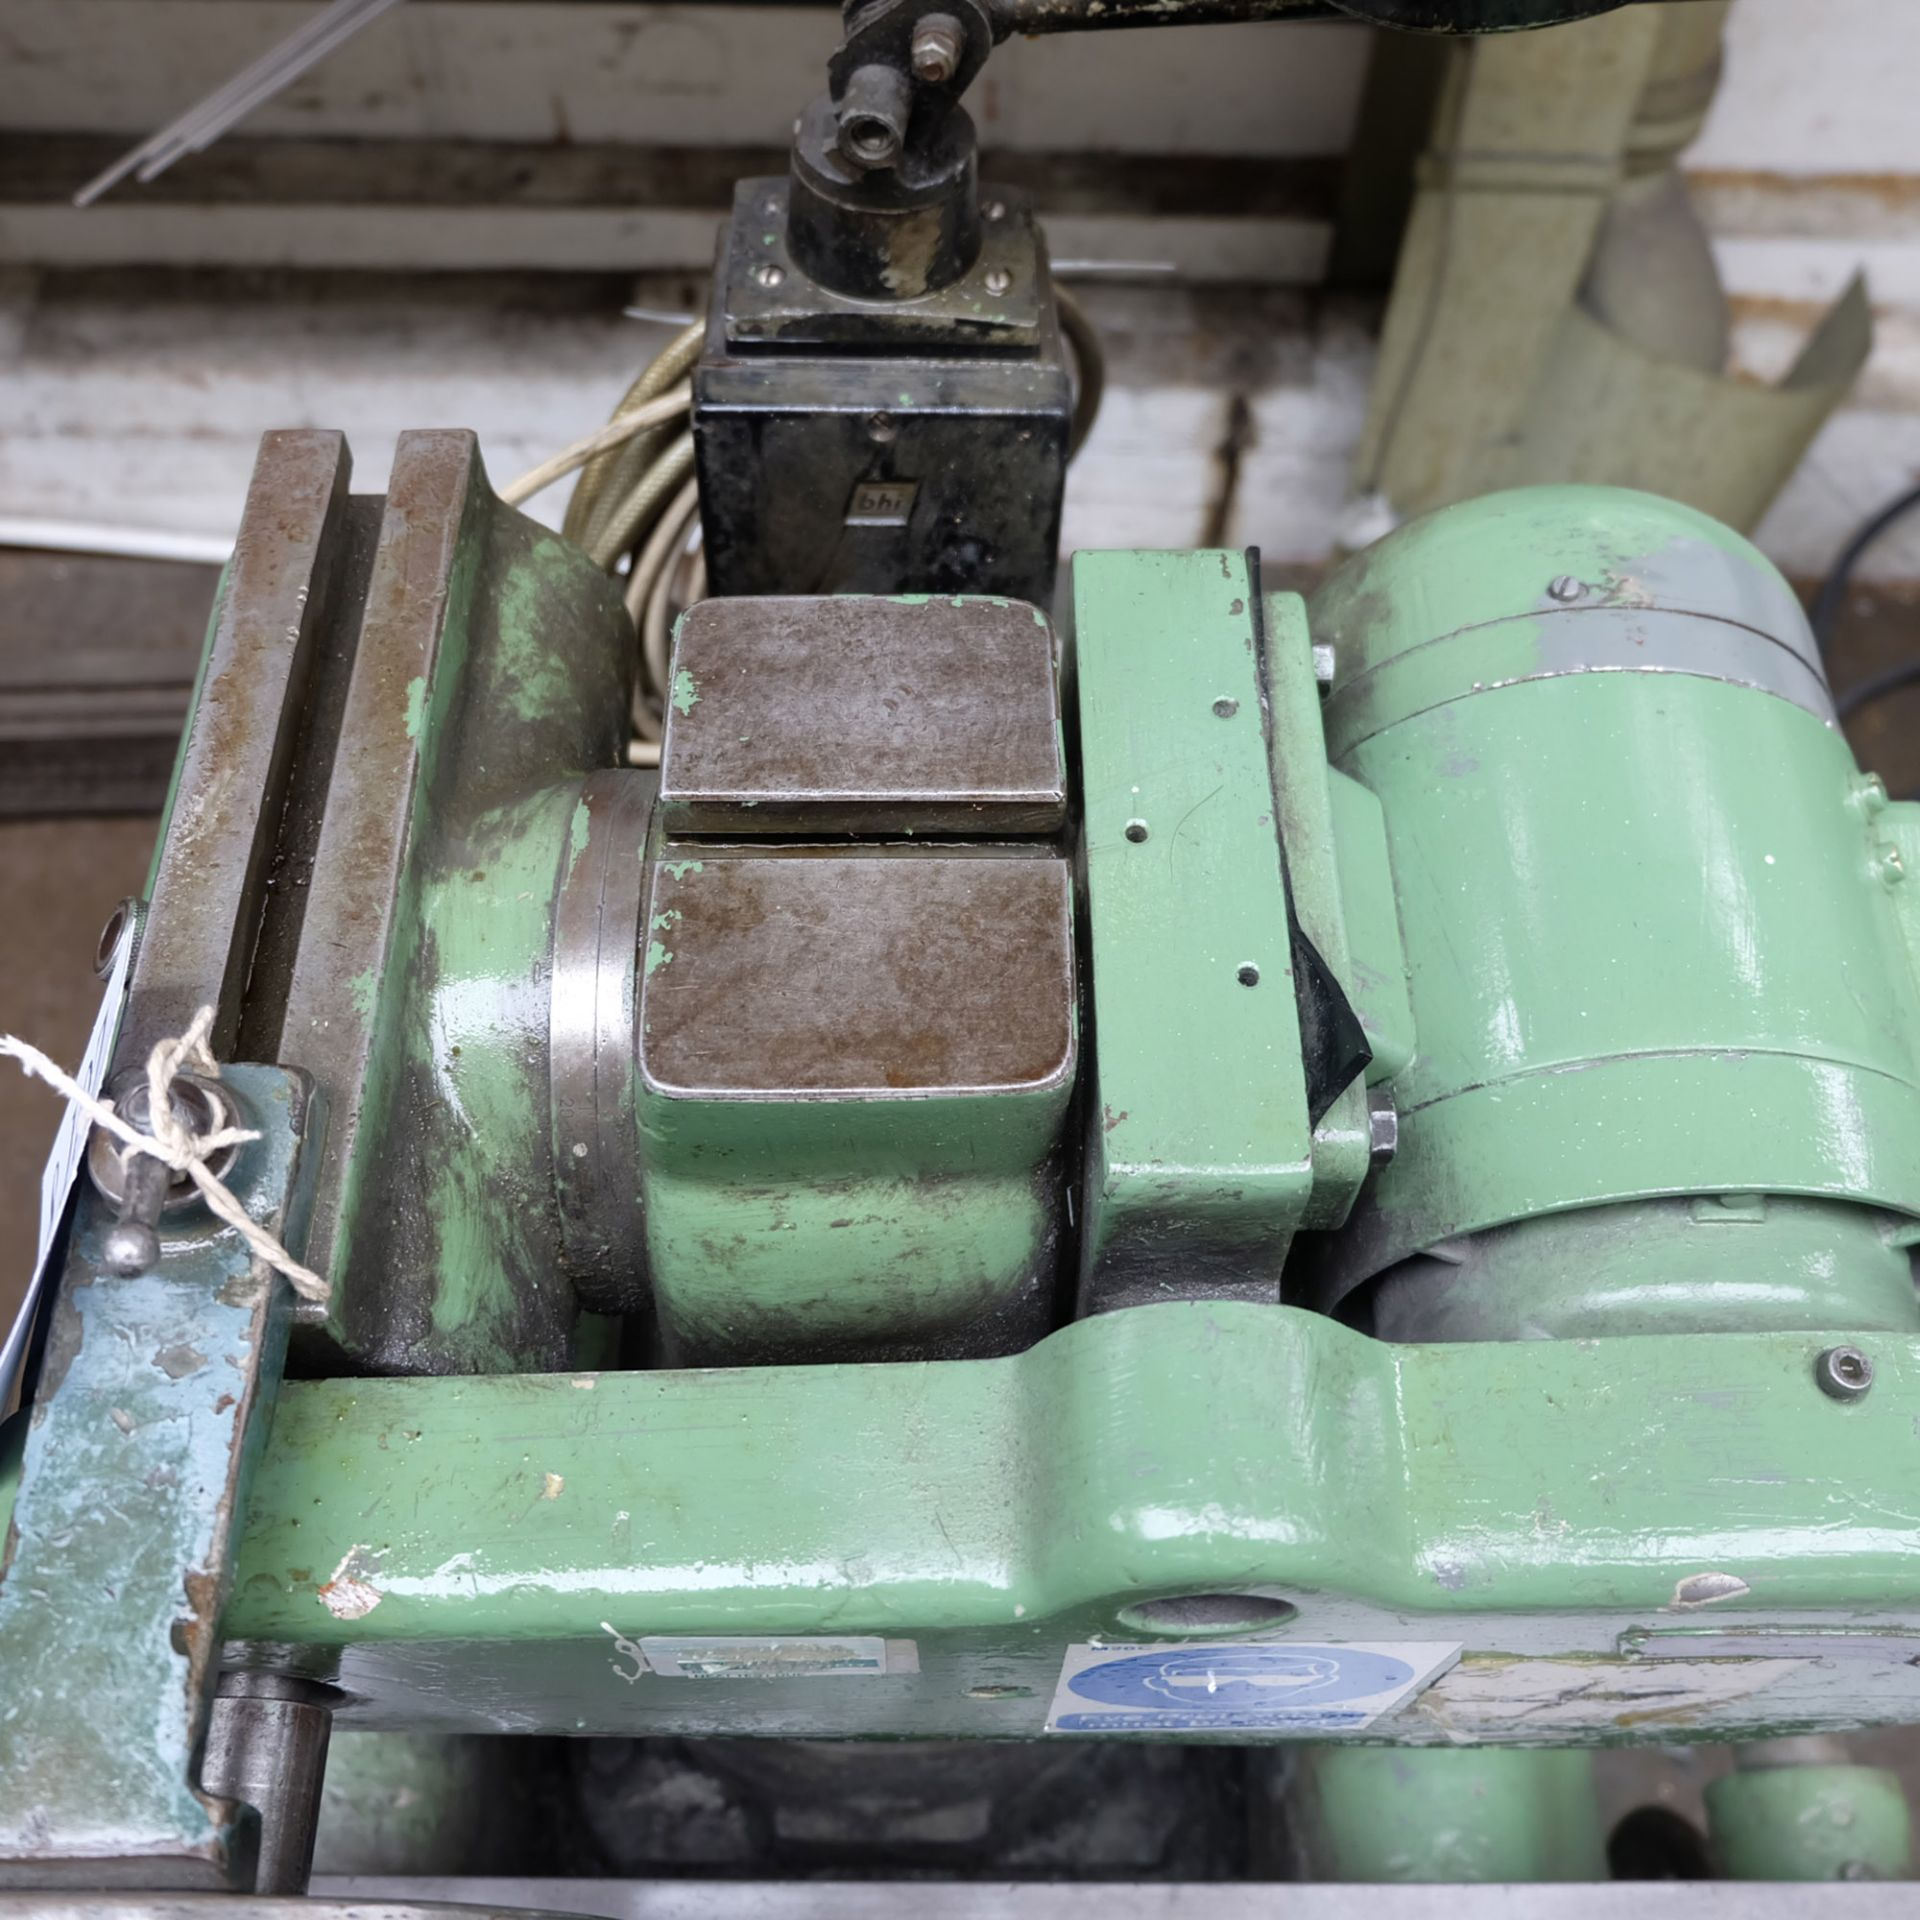 Jotes Model NVA-25 Tool and Cutter Grinder. Rise and Fall and Tilt and Swivel Head. - Image 4 of 6